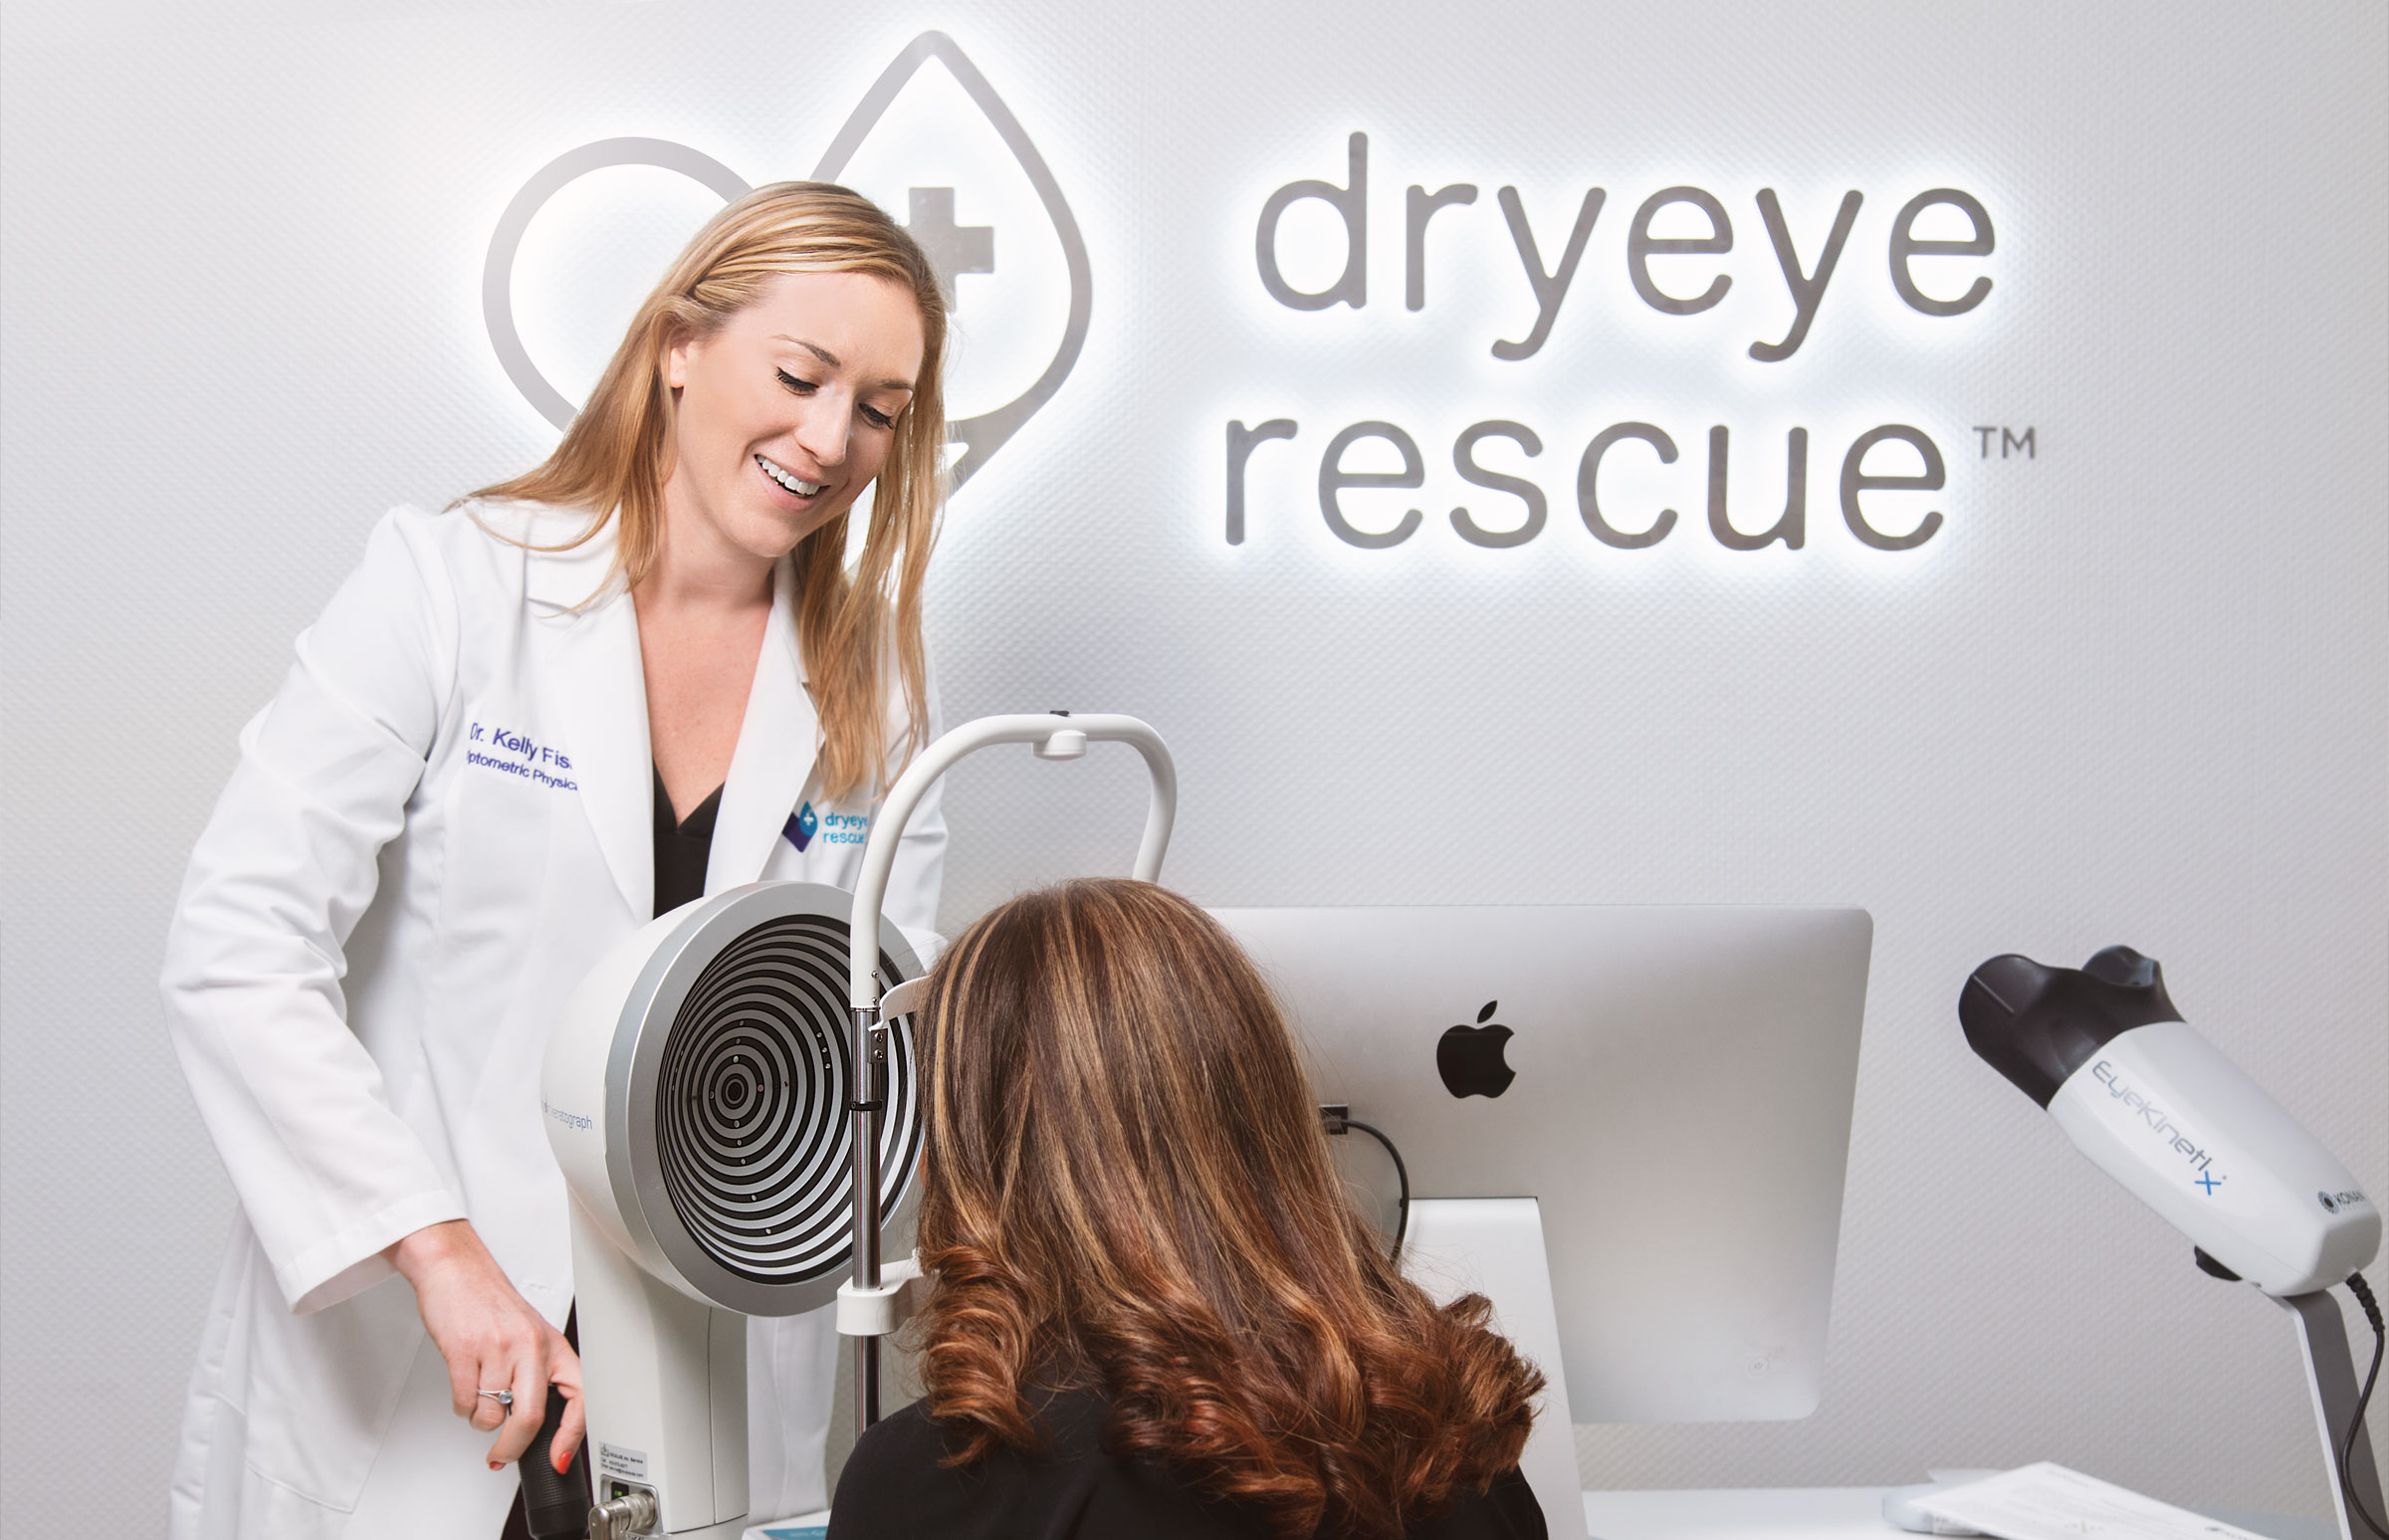 Dr. Kelly Fisher with a Dry Eye Patient